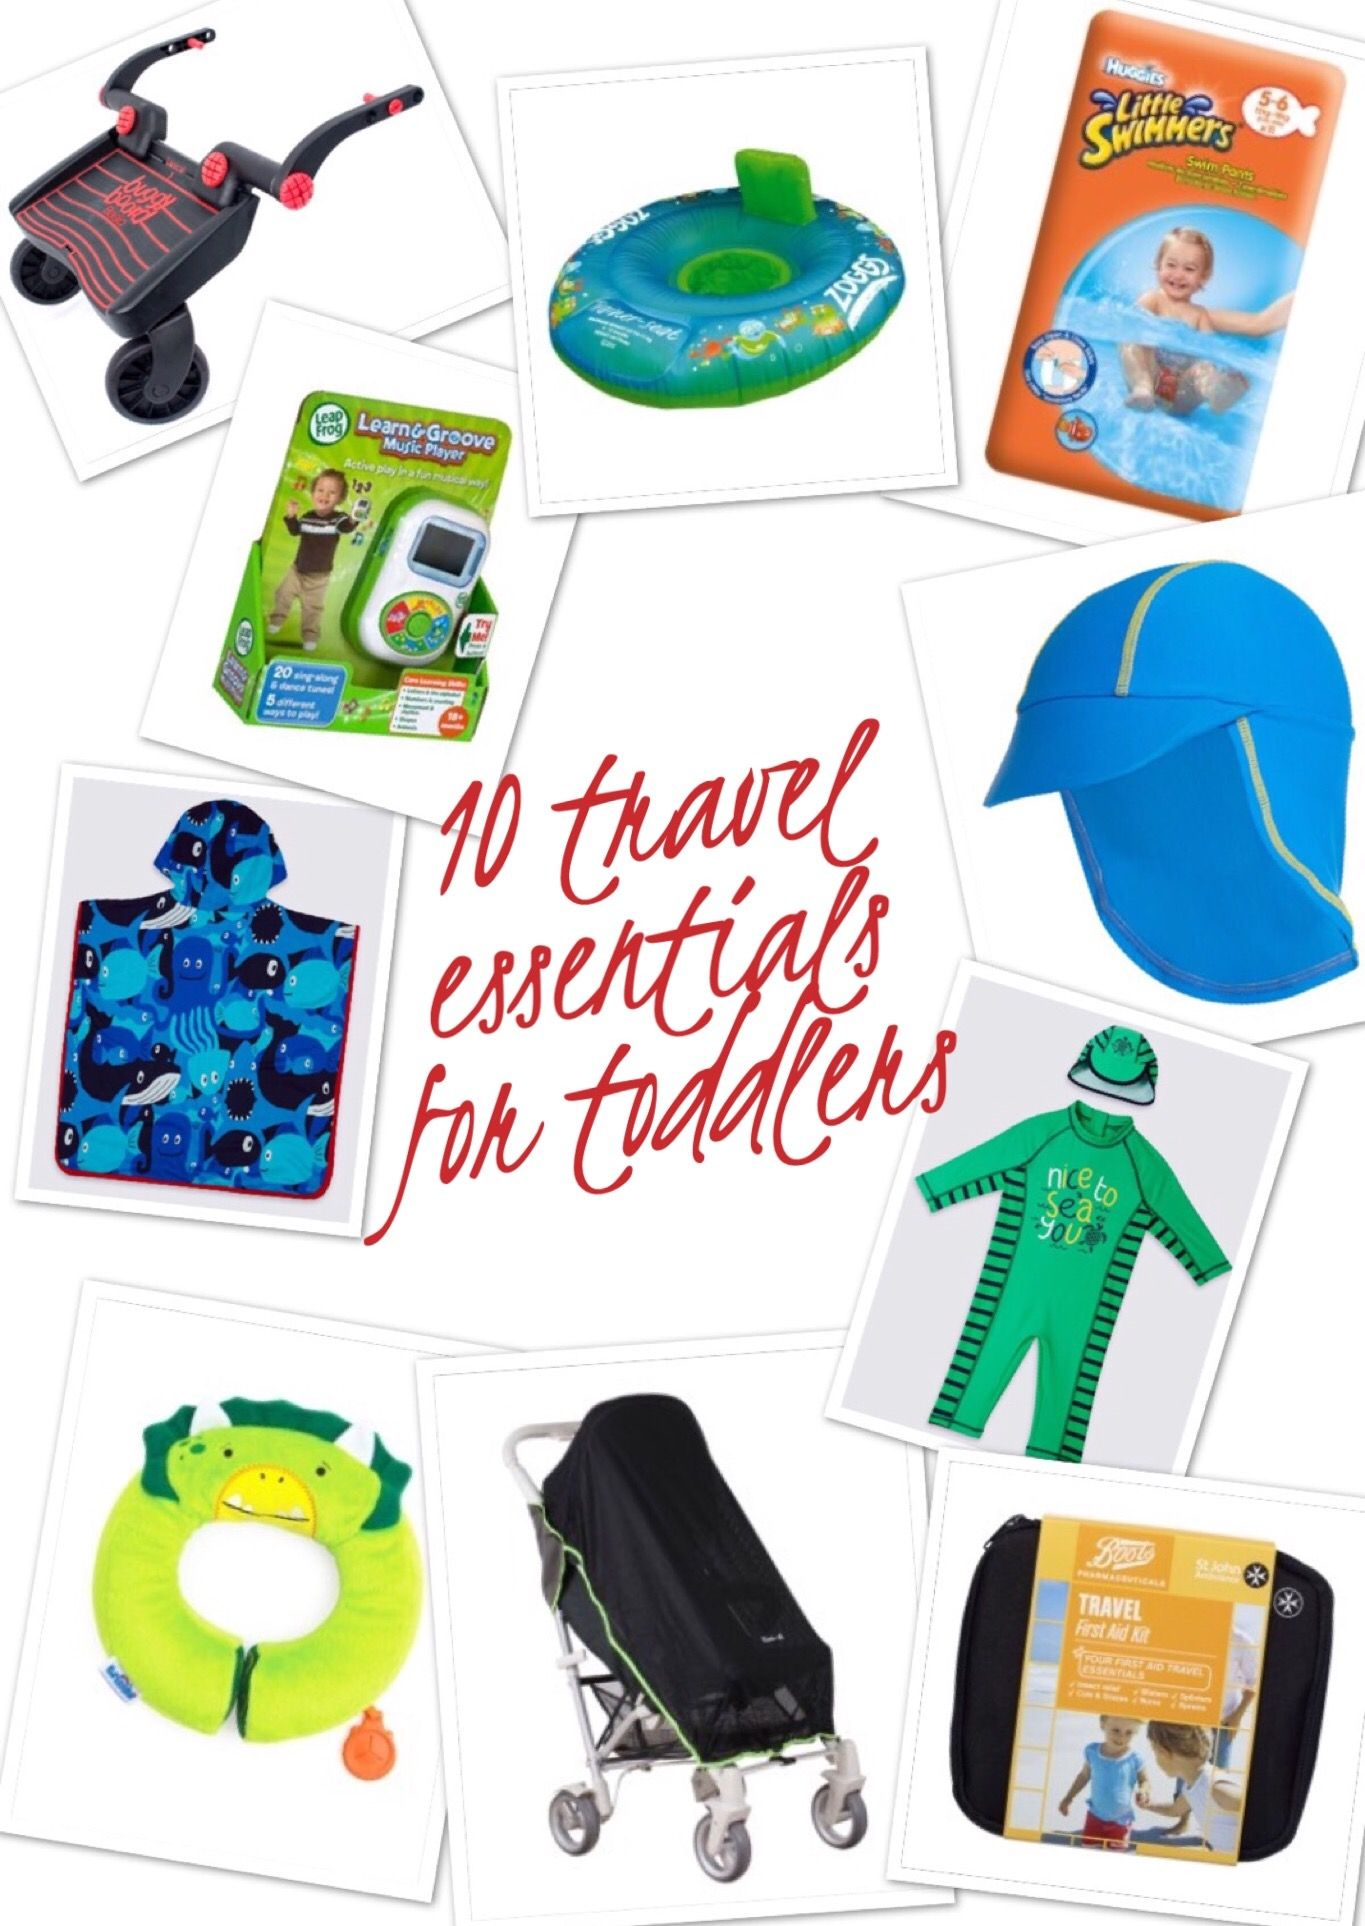 10 Travel Essentials For Toddlers With Images